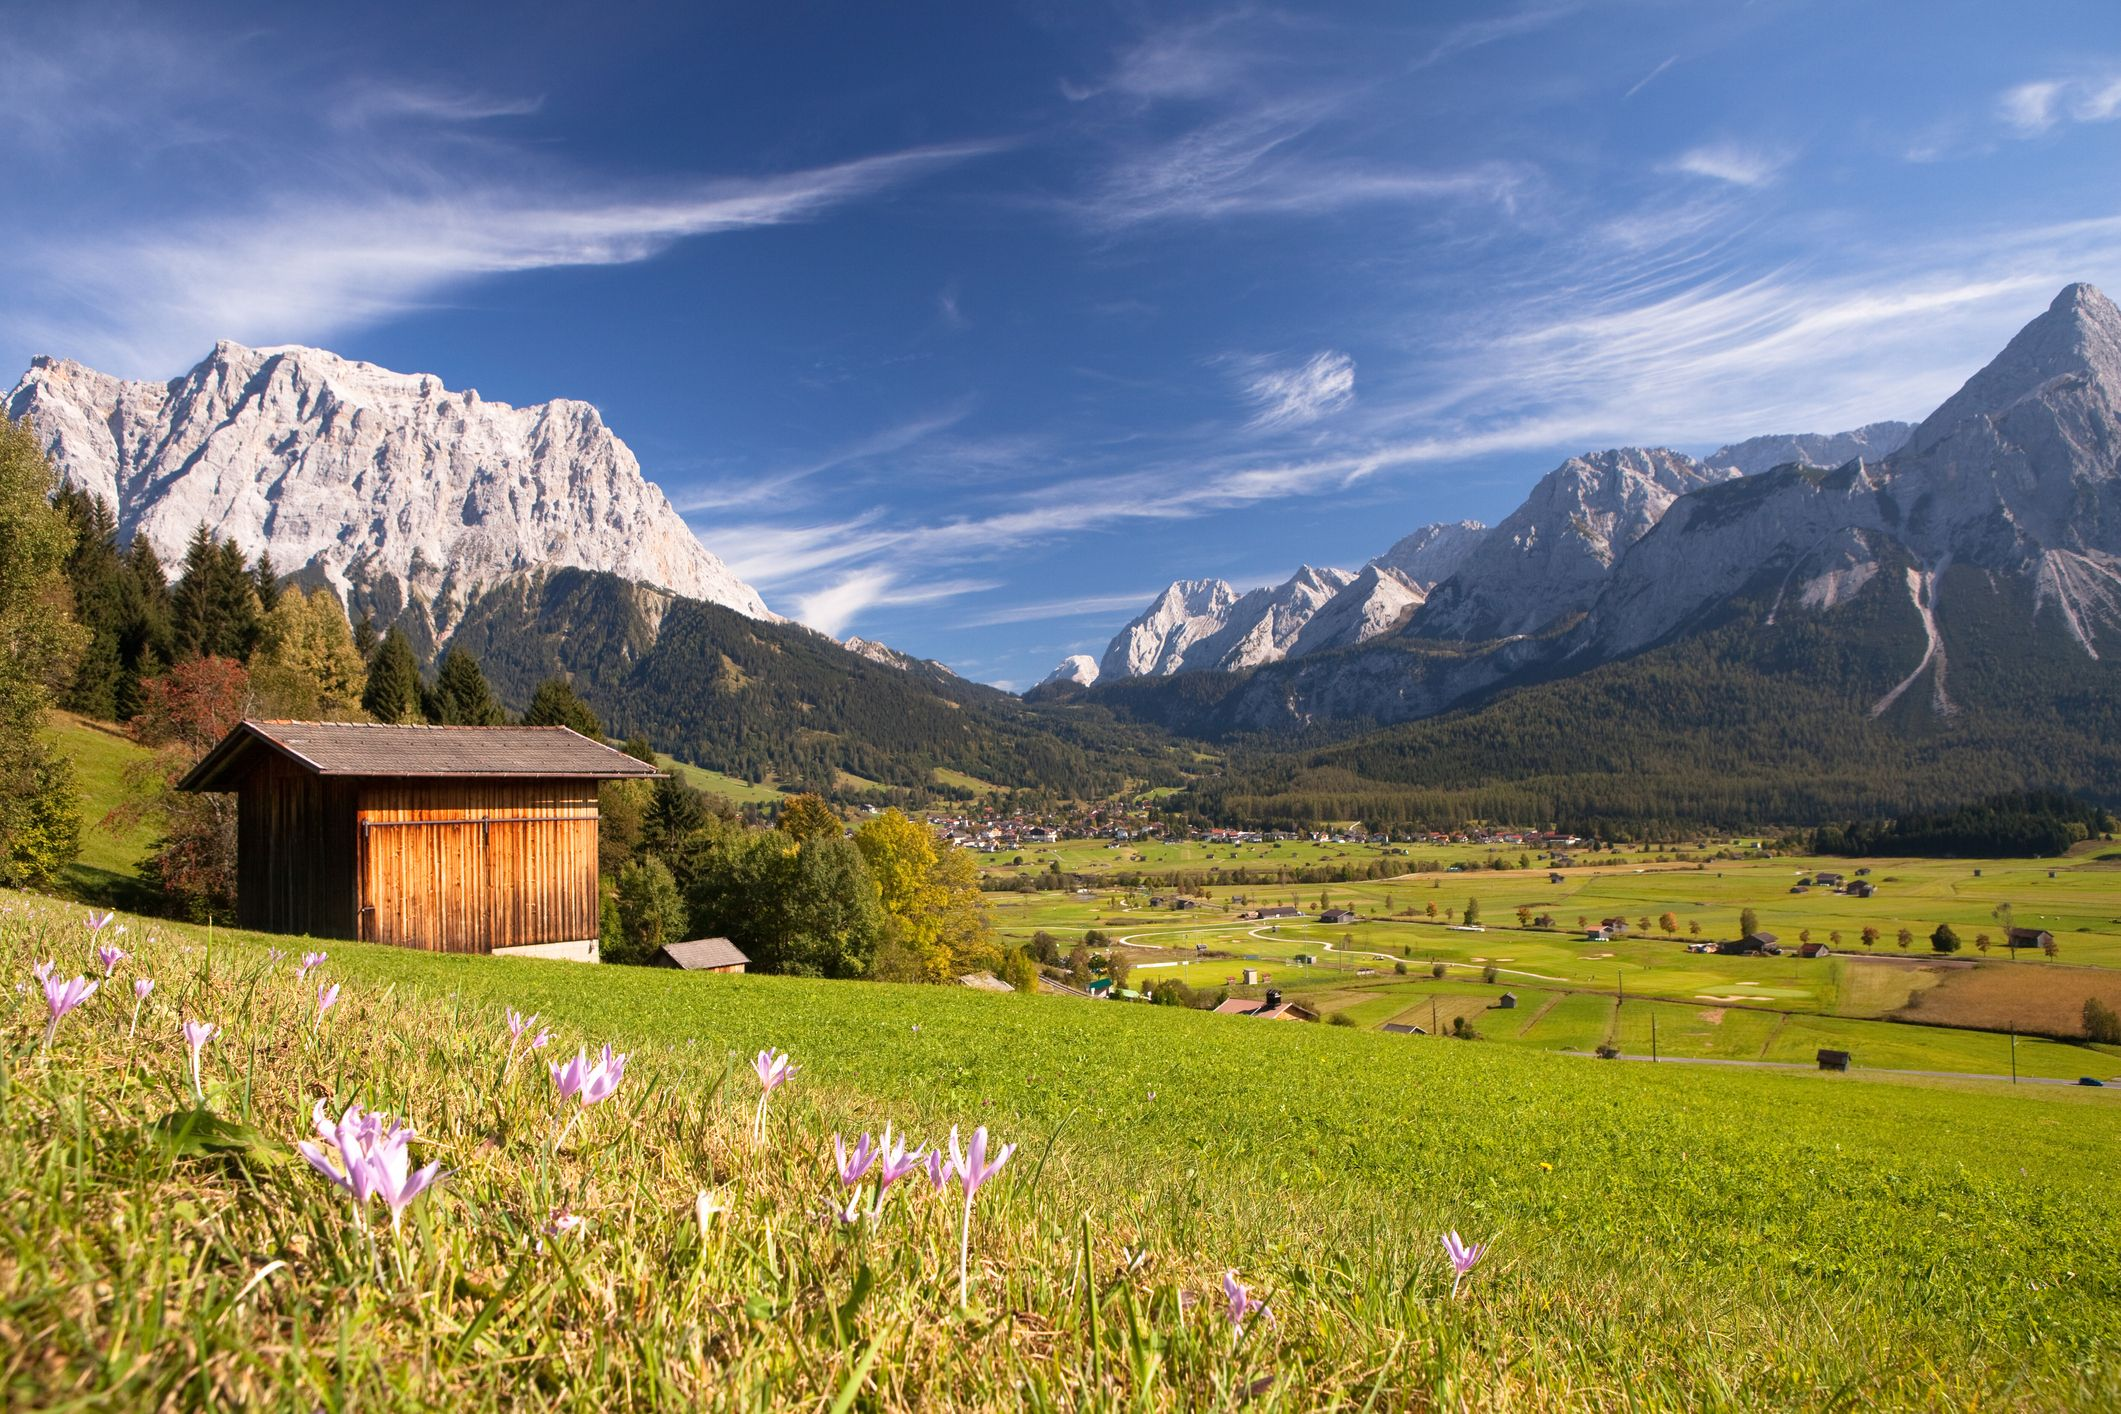 These impossibly pretty photos of Austria's countryside will make you want to visit